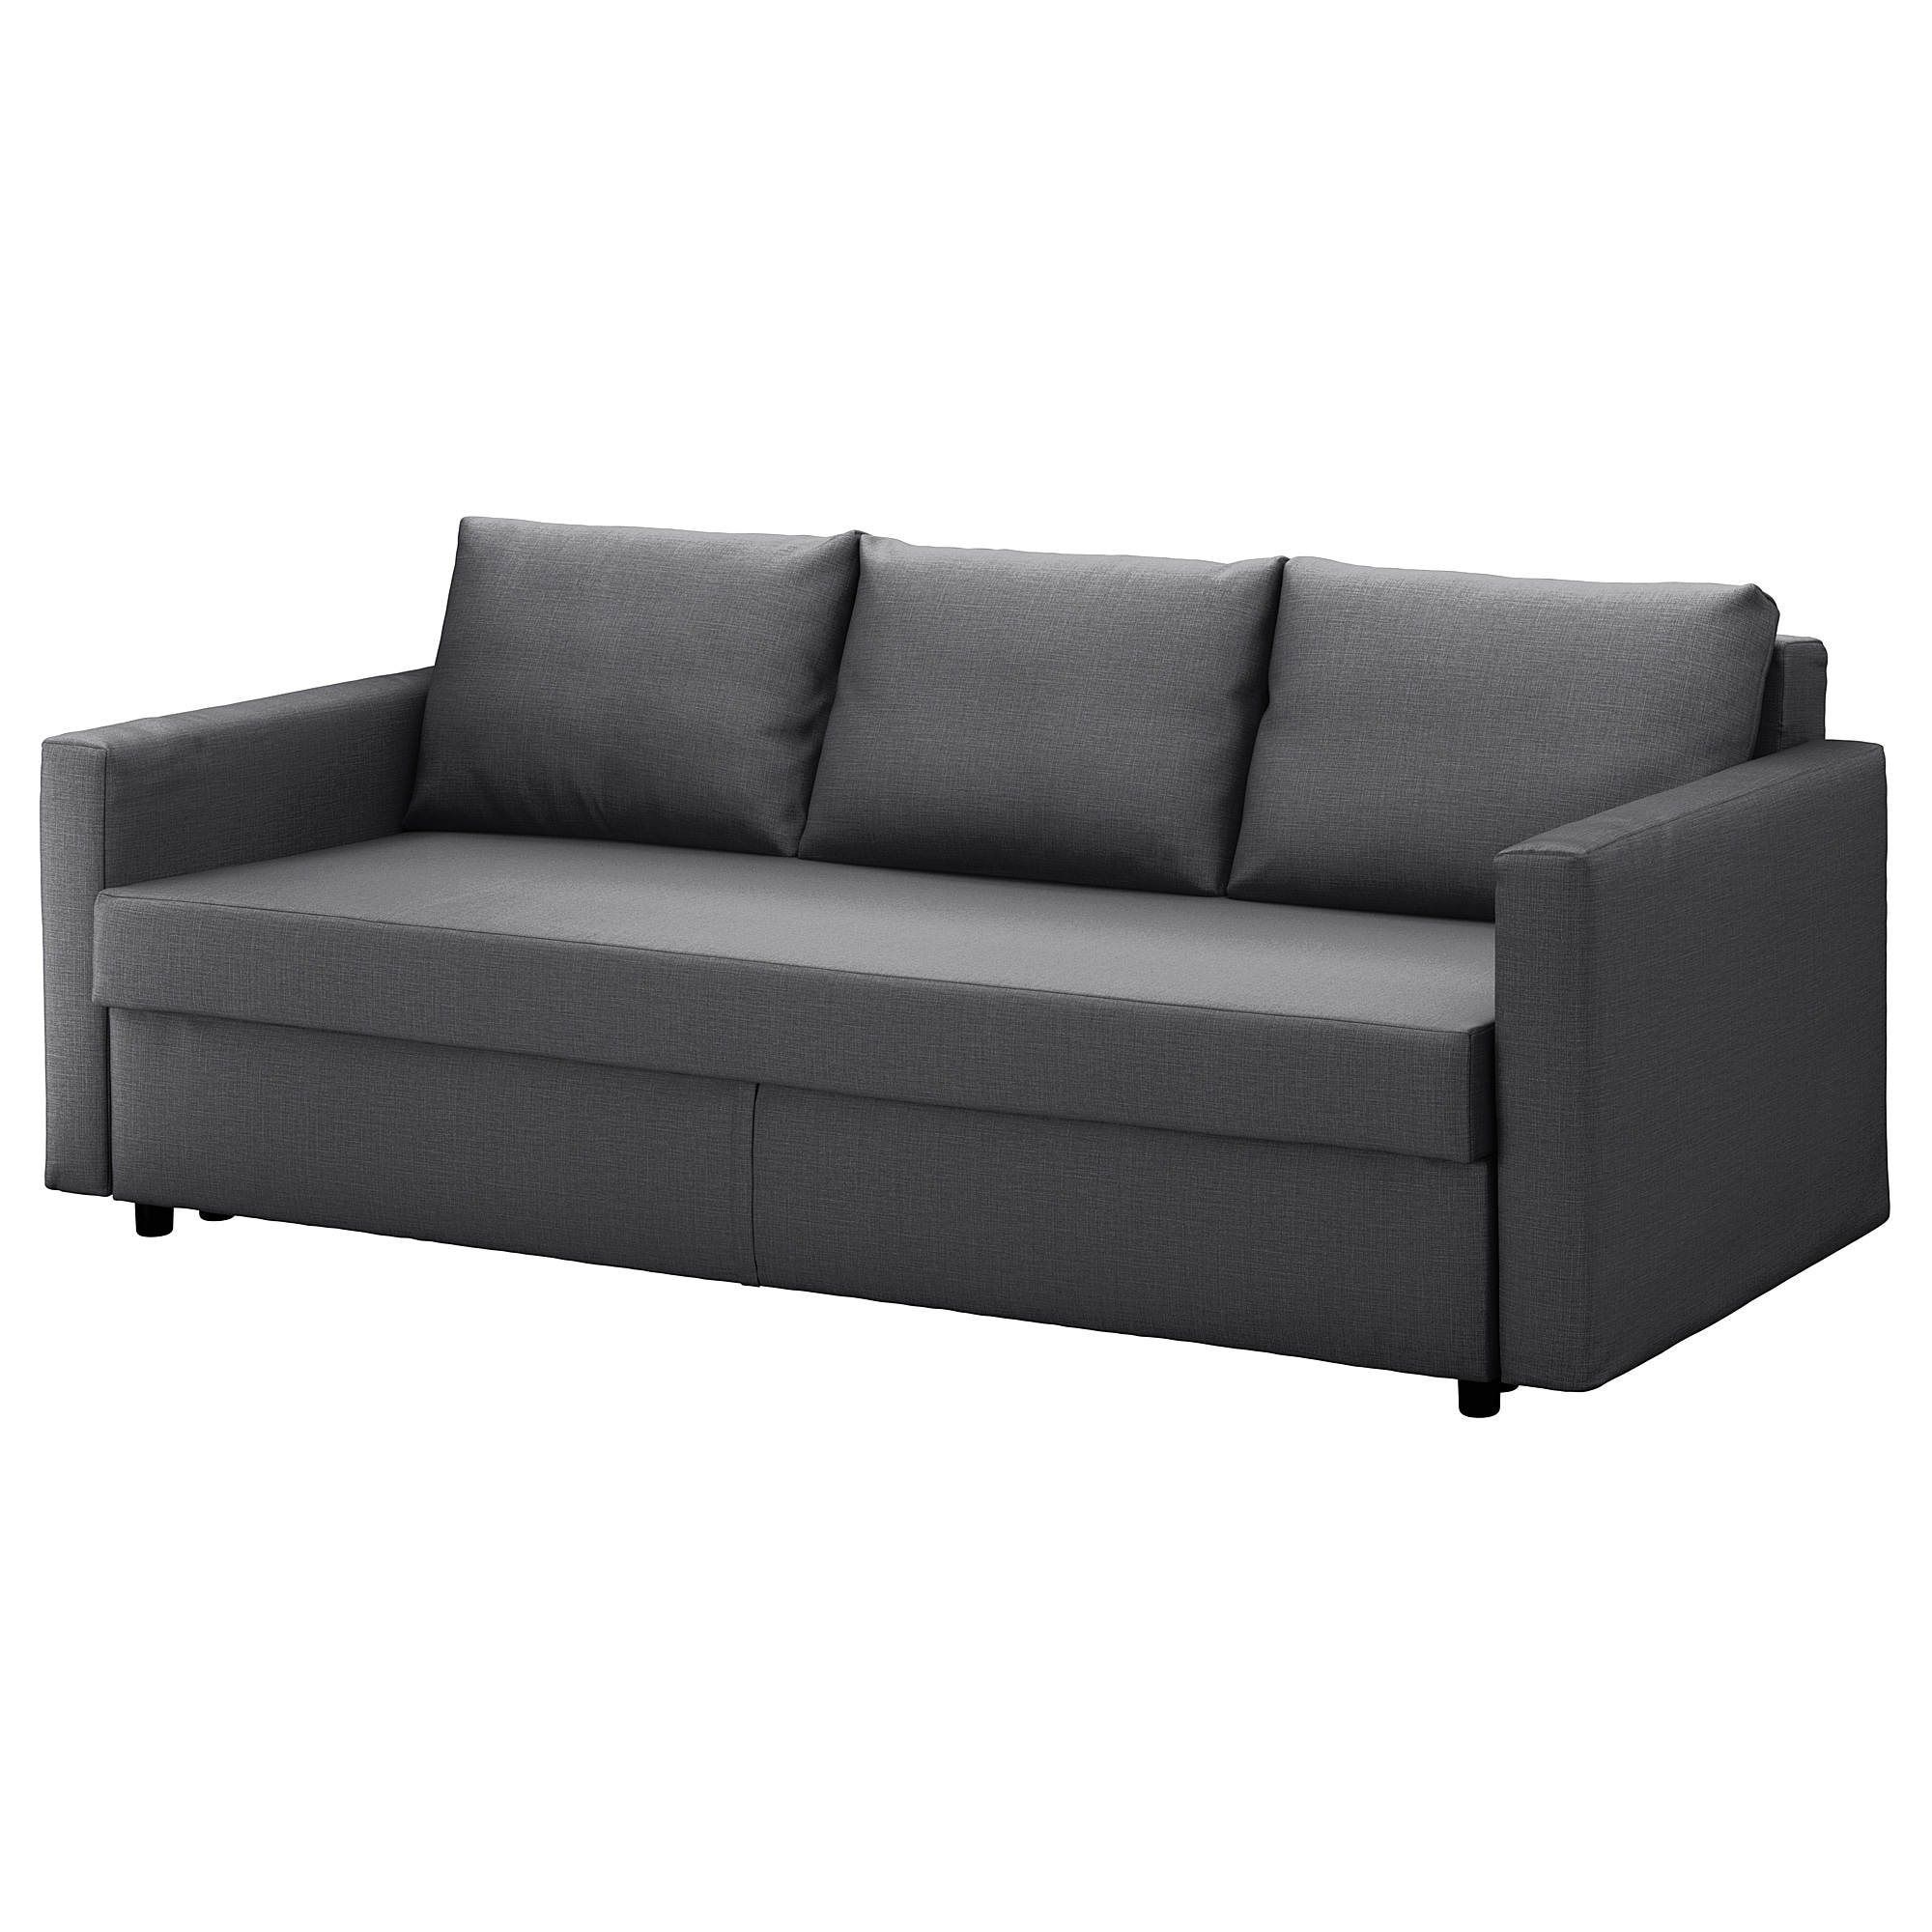 FRIHETEN Sleeper sofa Skiftebo dark gray IKEA